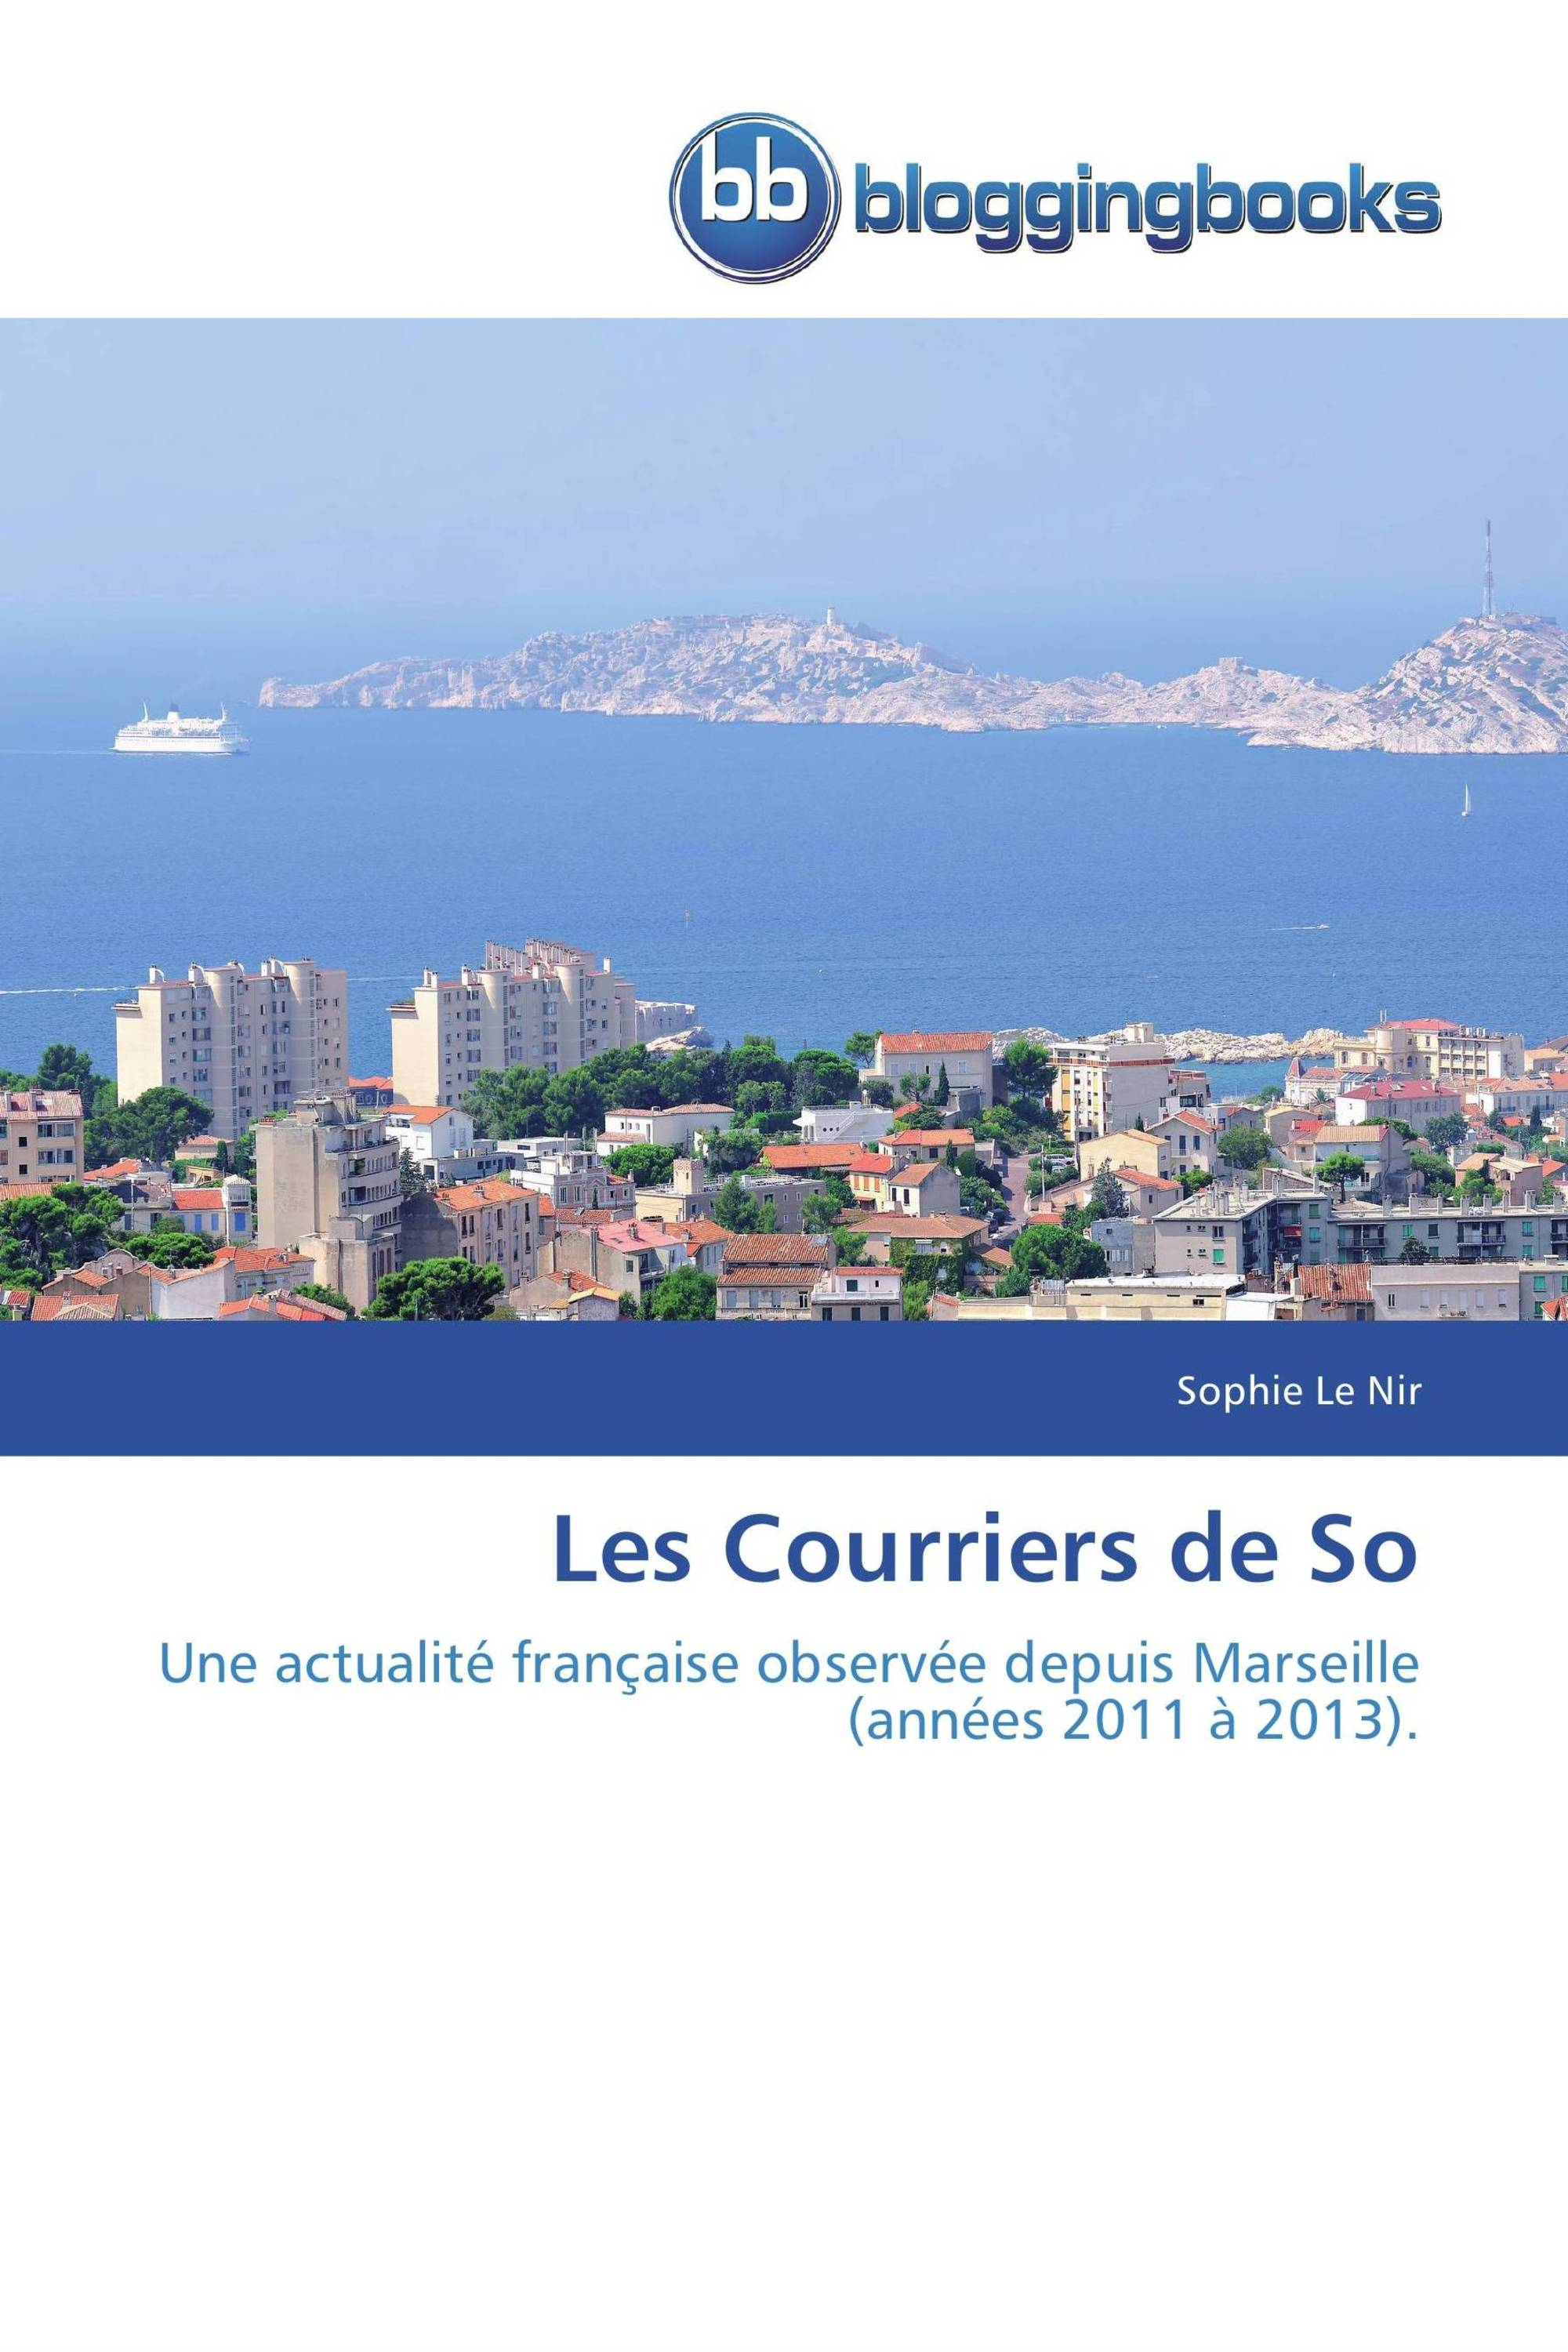 Les Courriers de So